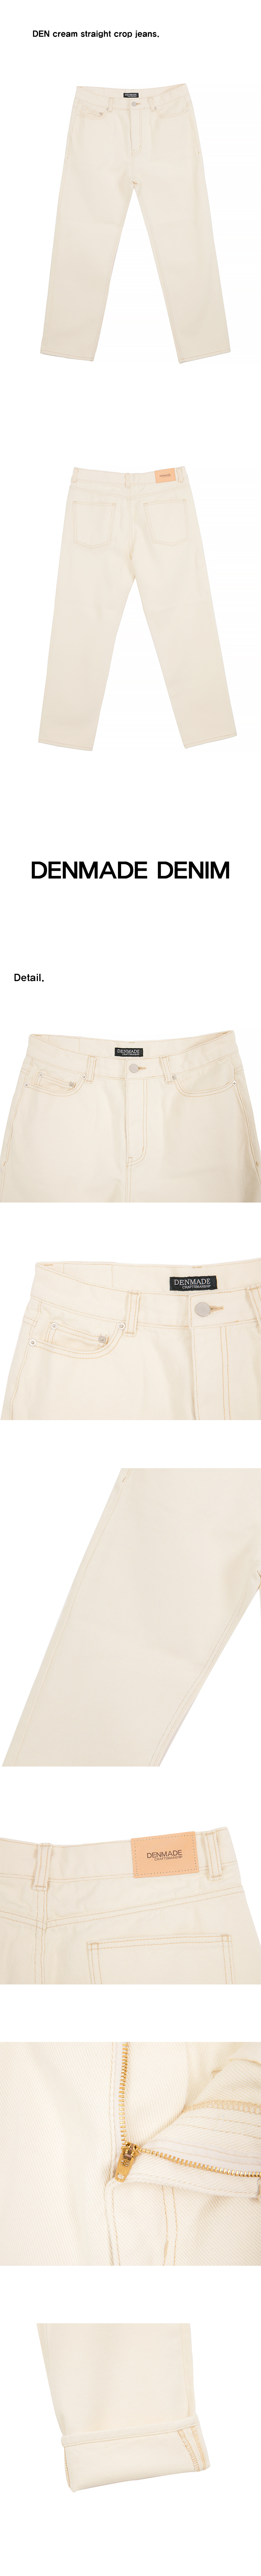 덴메이드(DENMADE) DEN cream straight crop jeans.